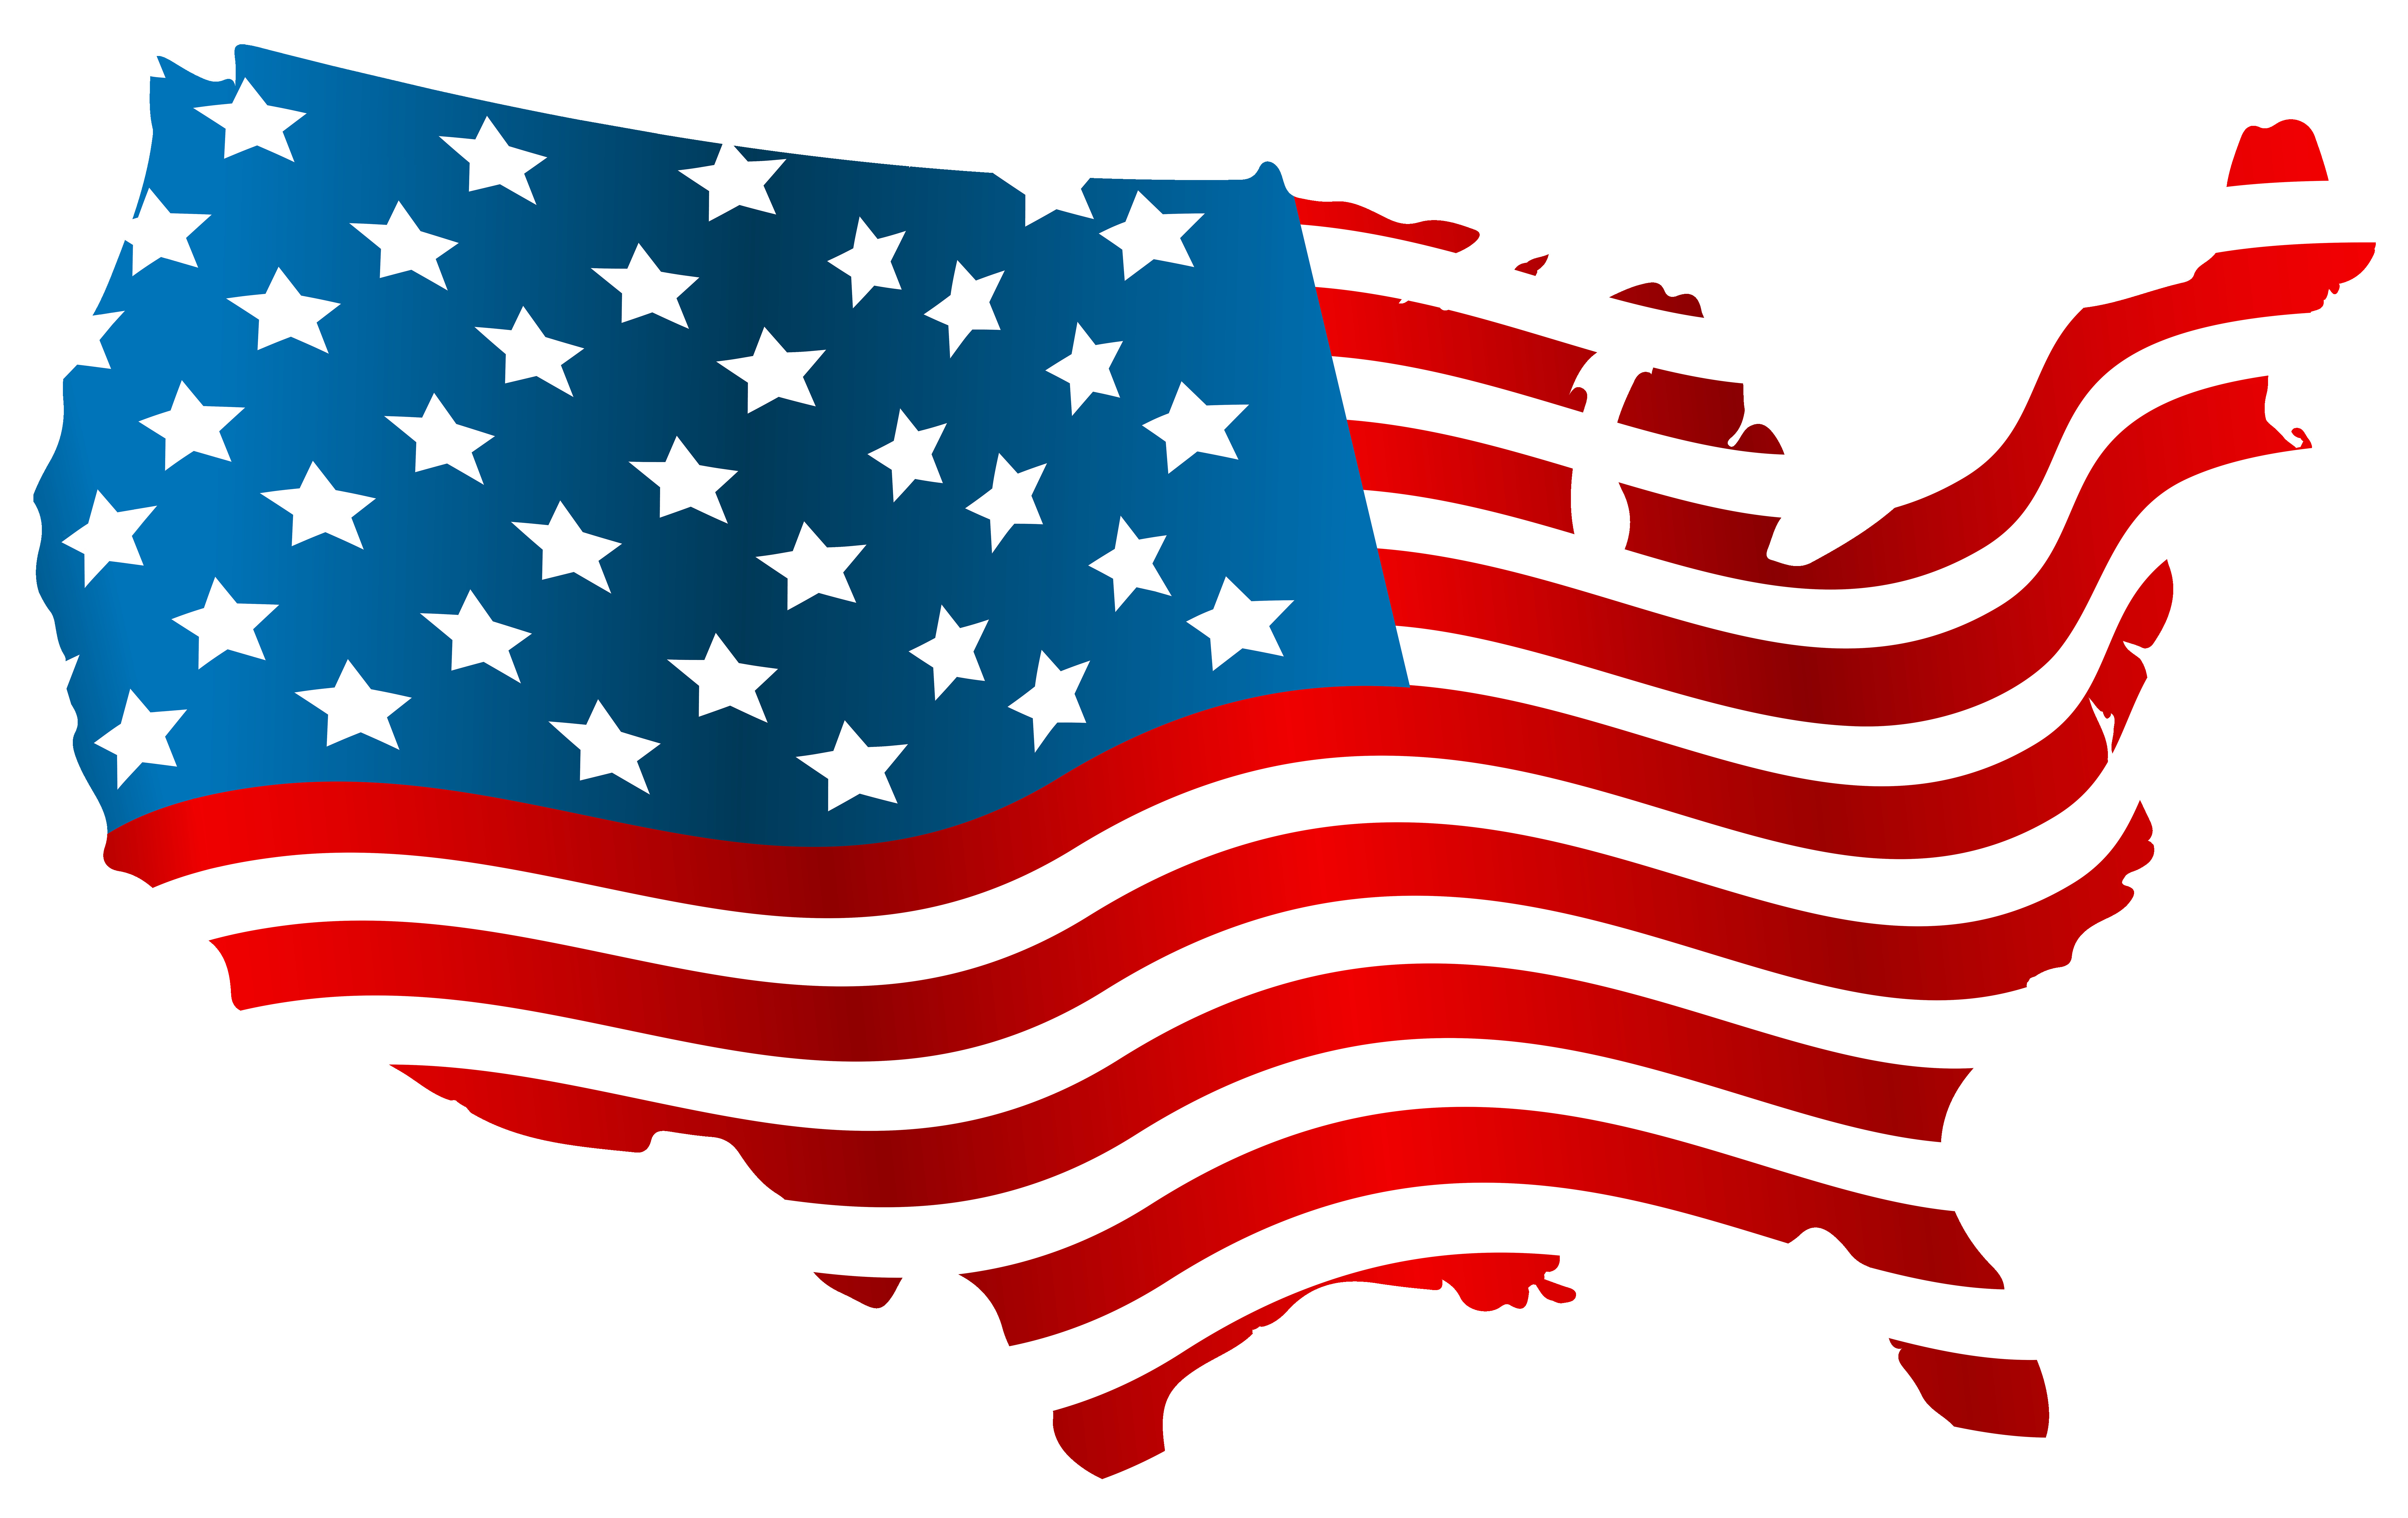 8000x5042 Usa Flag Map Png Clip Art Image Gallery Yopriceville High Adorable